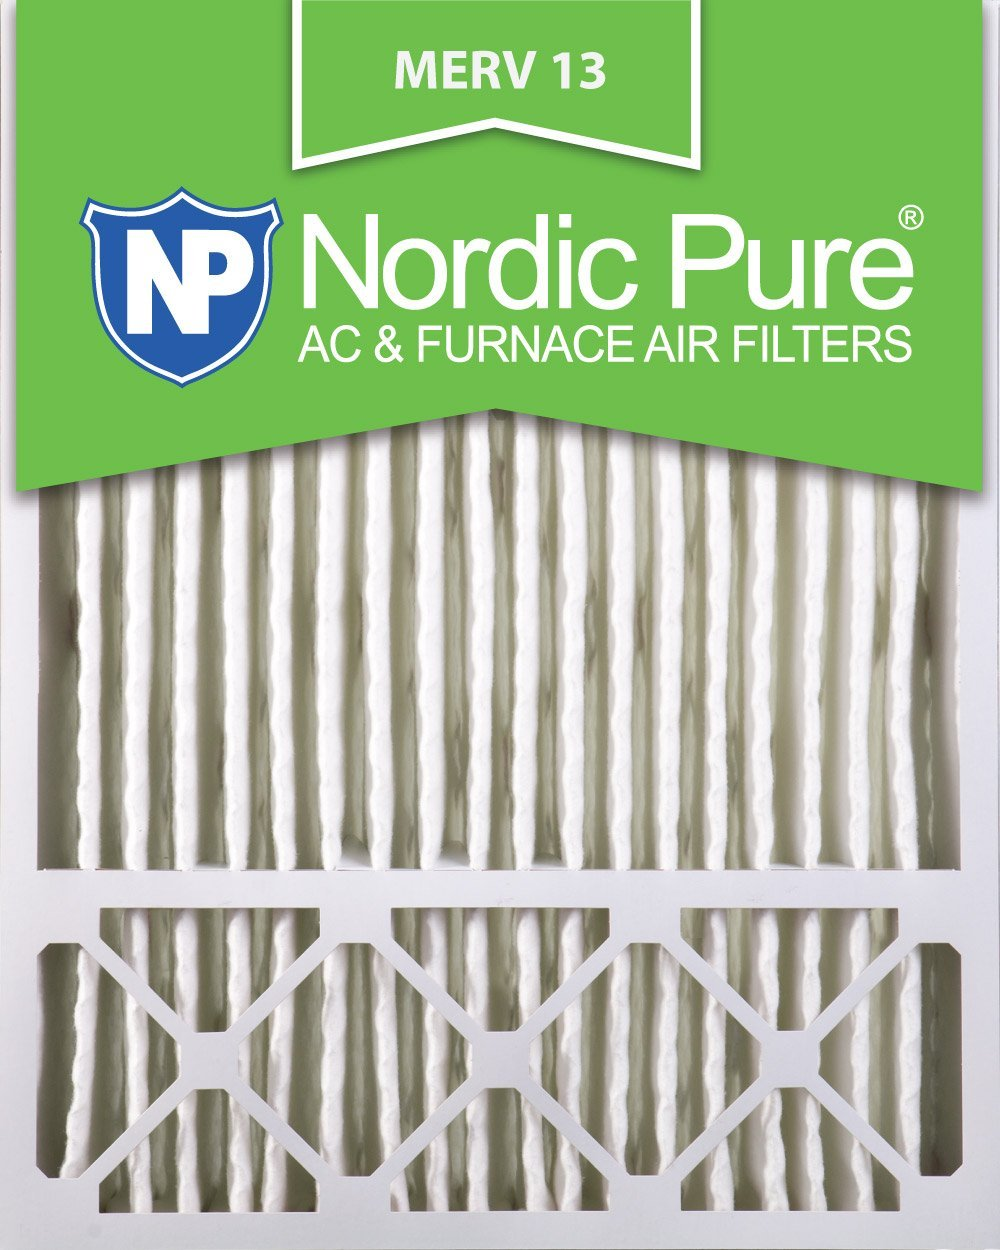 Nordic Pure 20x25x5 (4-3/8 Actual Depth) Lennox X6673_X6675 Replacement MERV 13 Pleated AC Furnace Air Filter, Box of 2